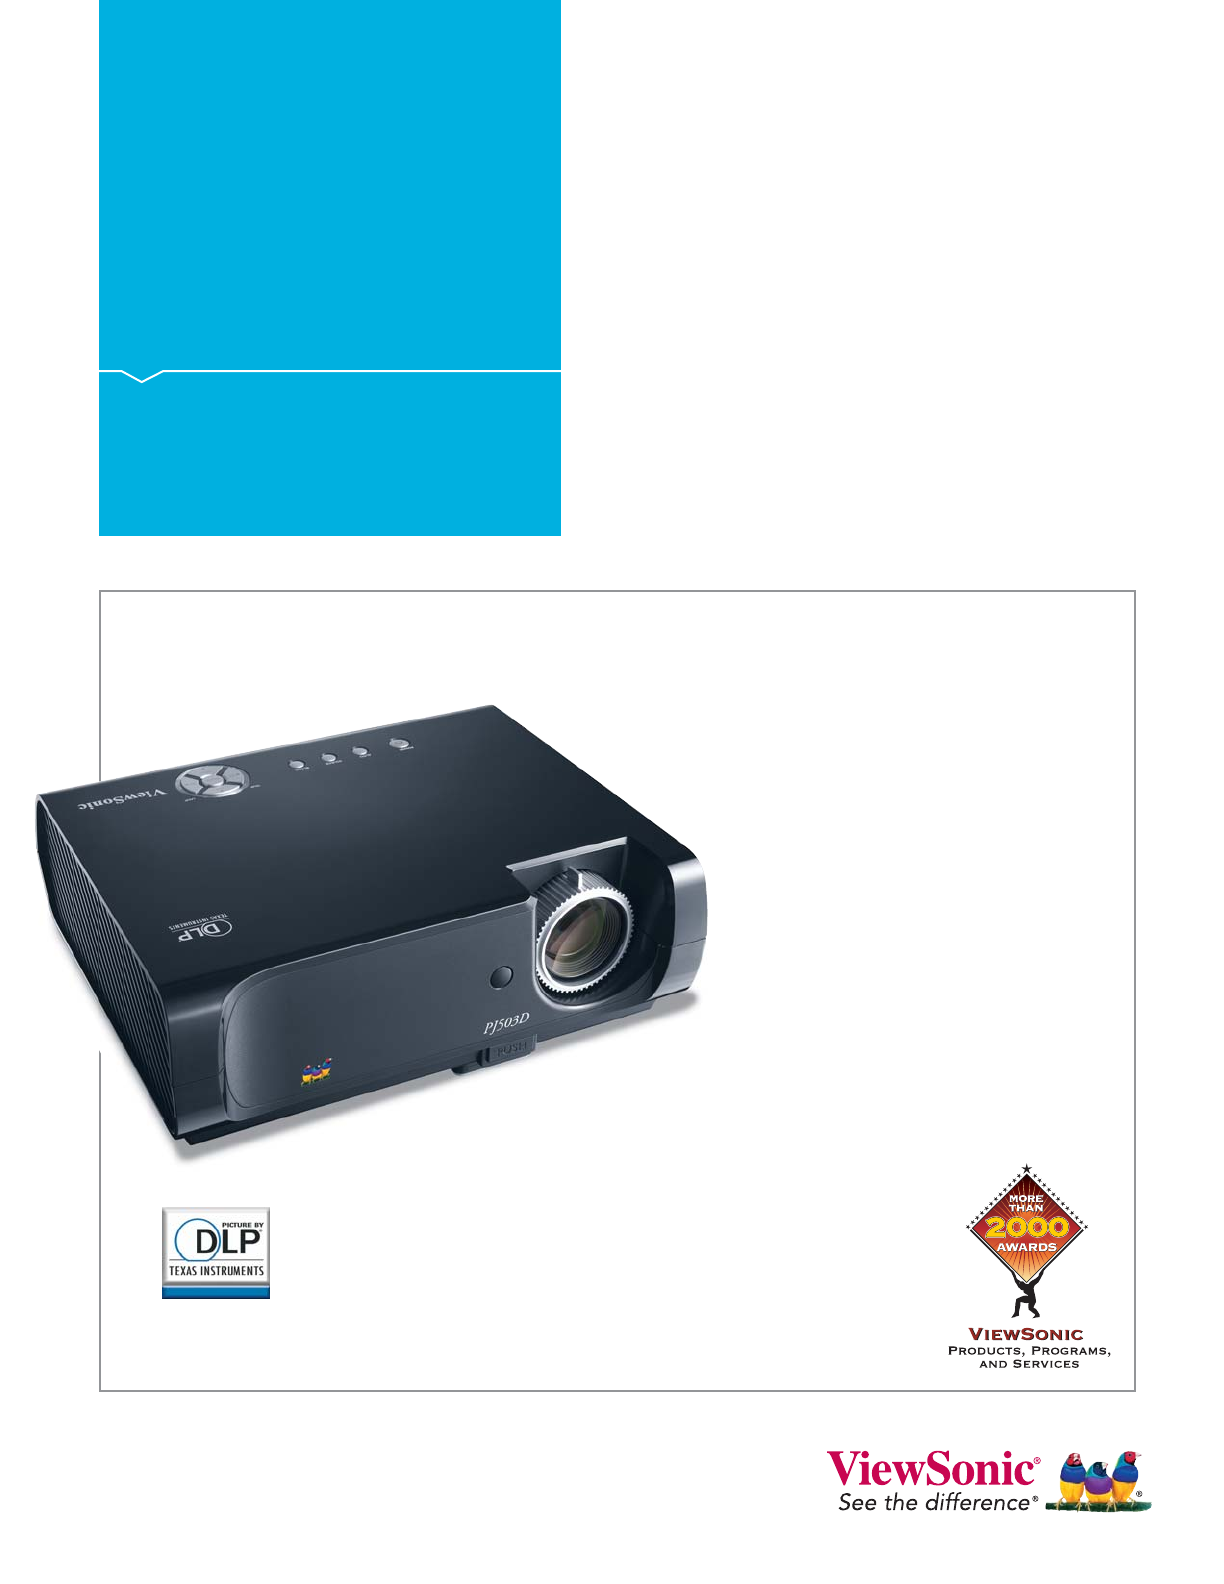 viewsonic projector pj503d user guide manualsonline com rh office manualsonline com Viewsonic Projector PJD5123 Viewsonic Projector PJD5123